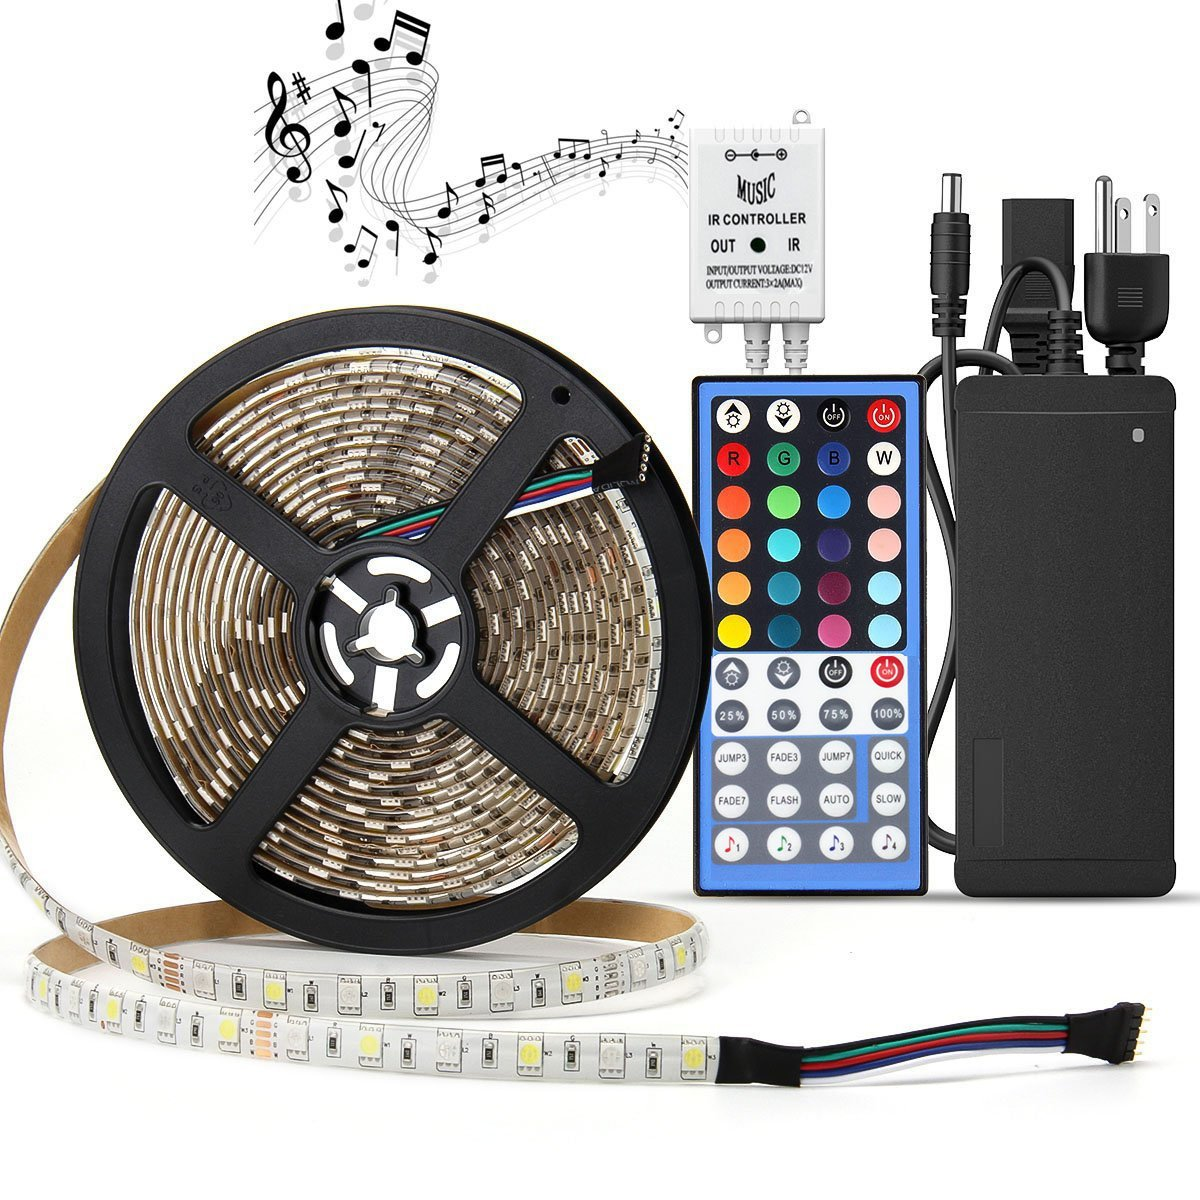 LED Light Strip Kit Waterproof,SUPERNIGHT RGBW (RGB+White) Color Changing Rope Lights,16.4ft 300leds Lighting with 12V Power Adapter and Music Voice Sensor Remote Controller